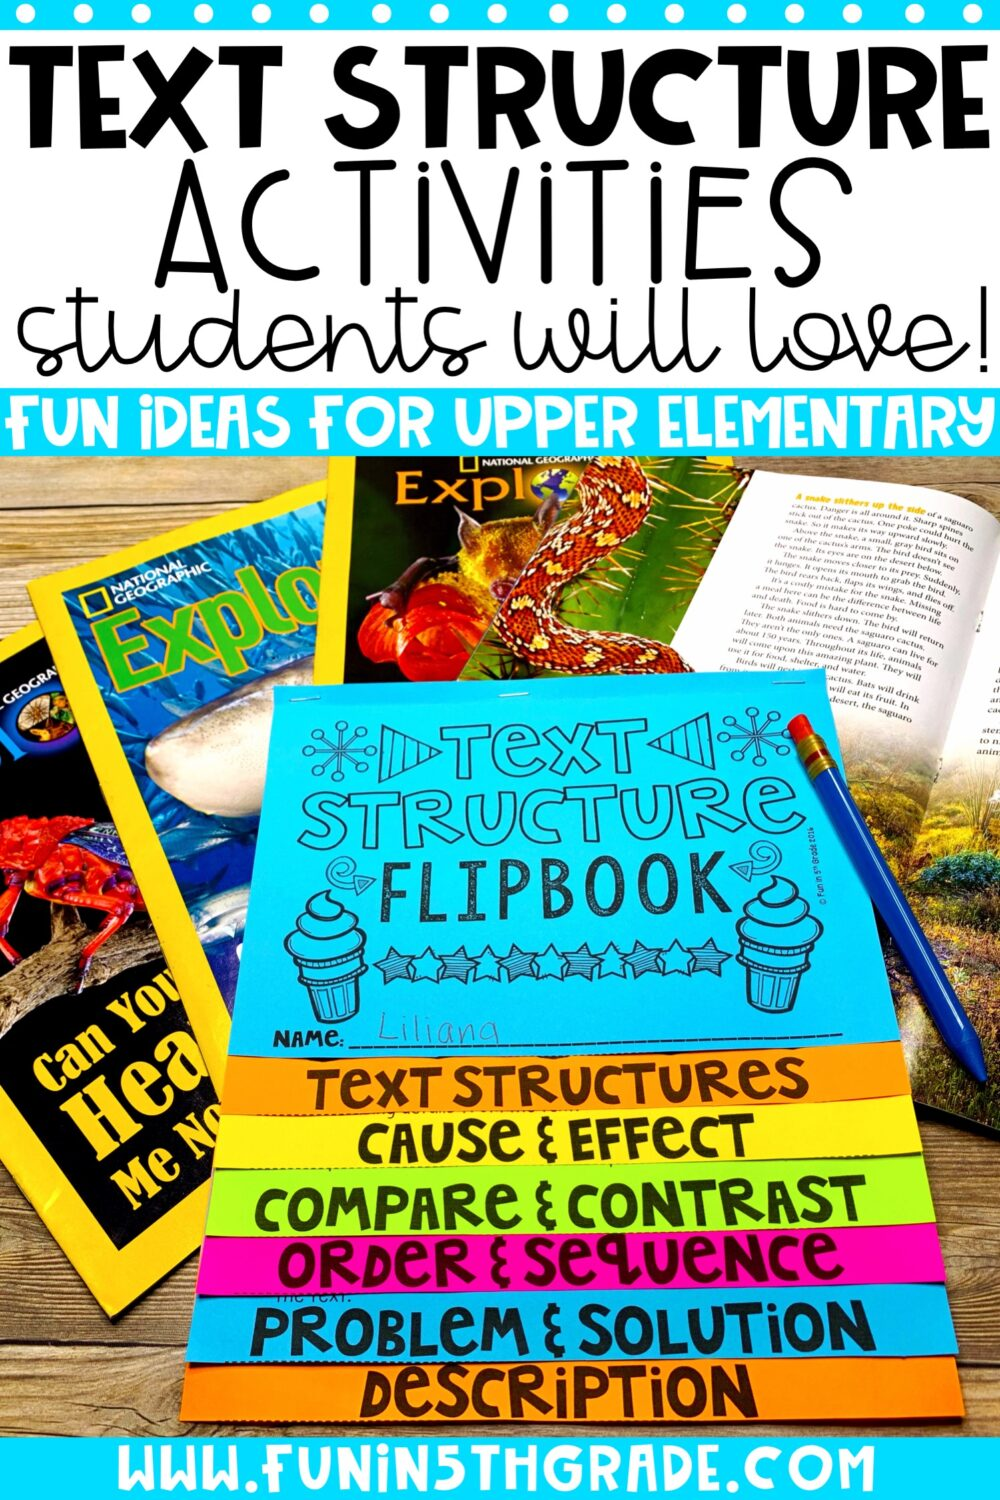 Text structure can be a challenge for students. Use these engaging ideas to help make the topic stick with your students. Ideas for whole group, small group, centers, and more!